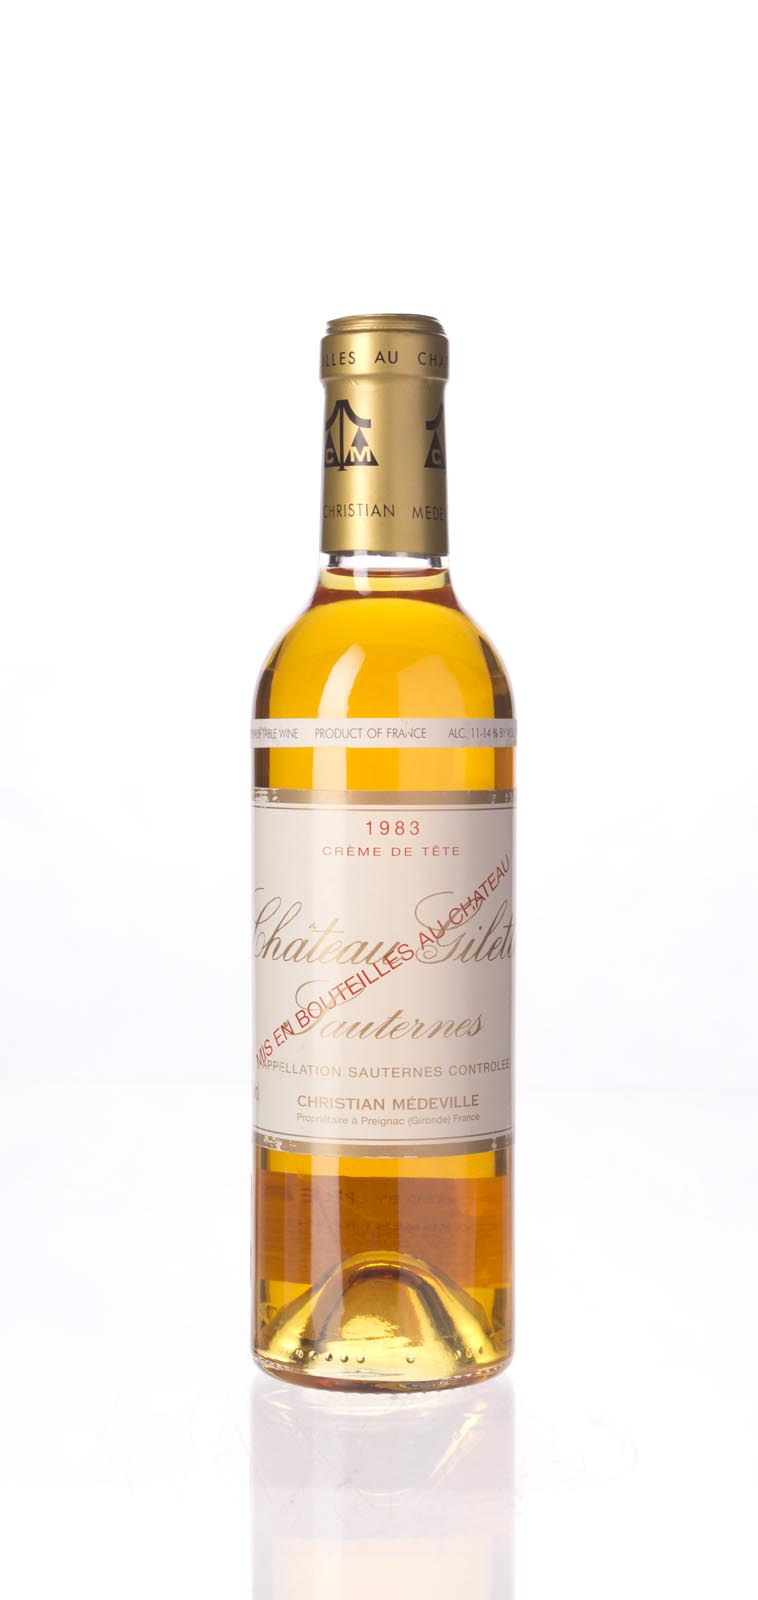 Gilette Creme de Tete 1983, 375ml () from The BPW - Merchants of rare and fine wines.